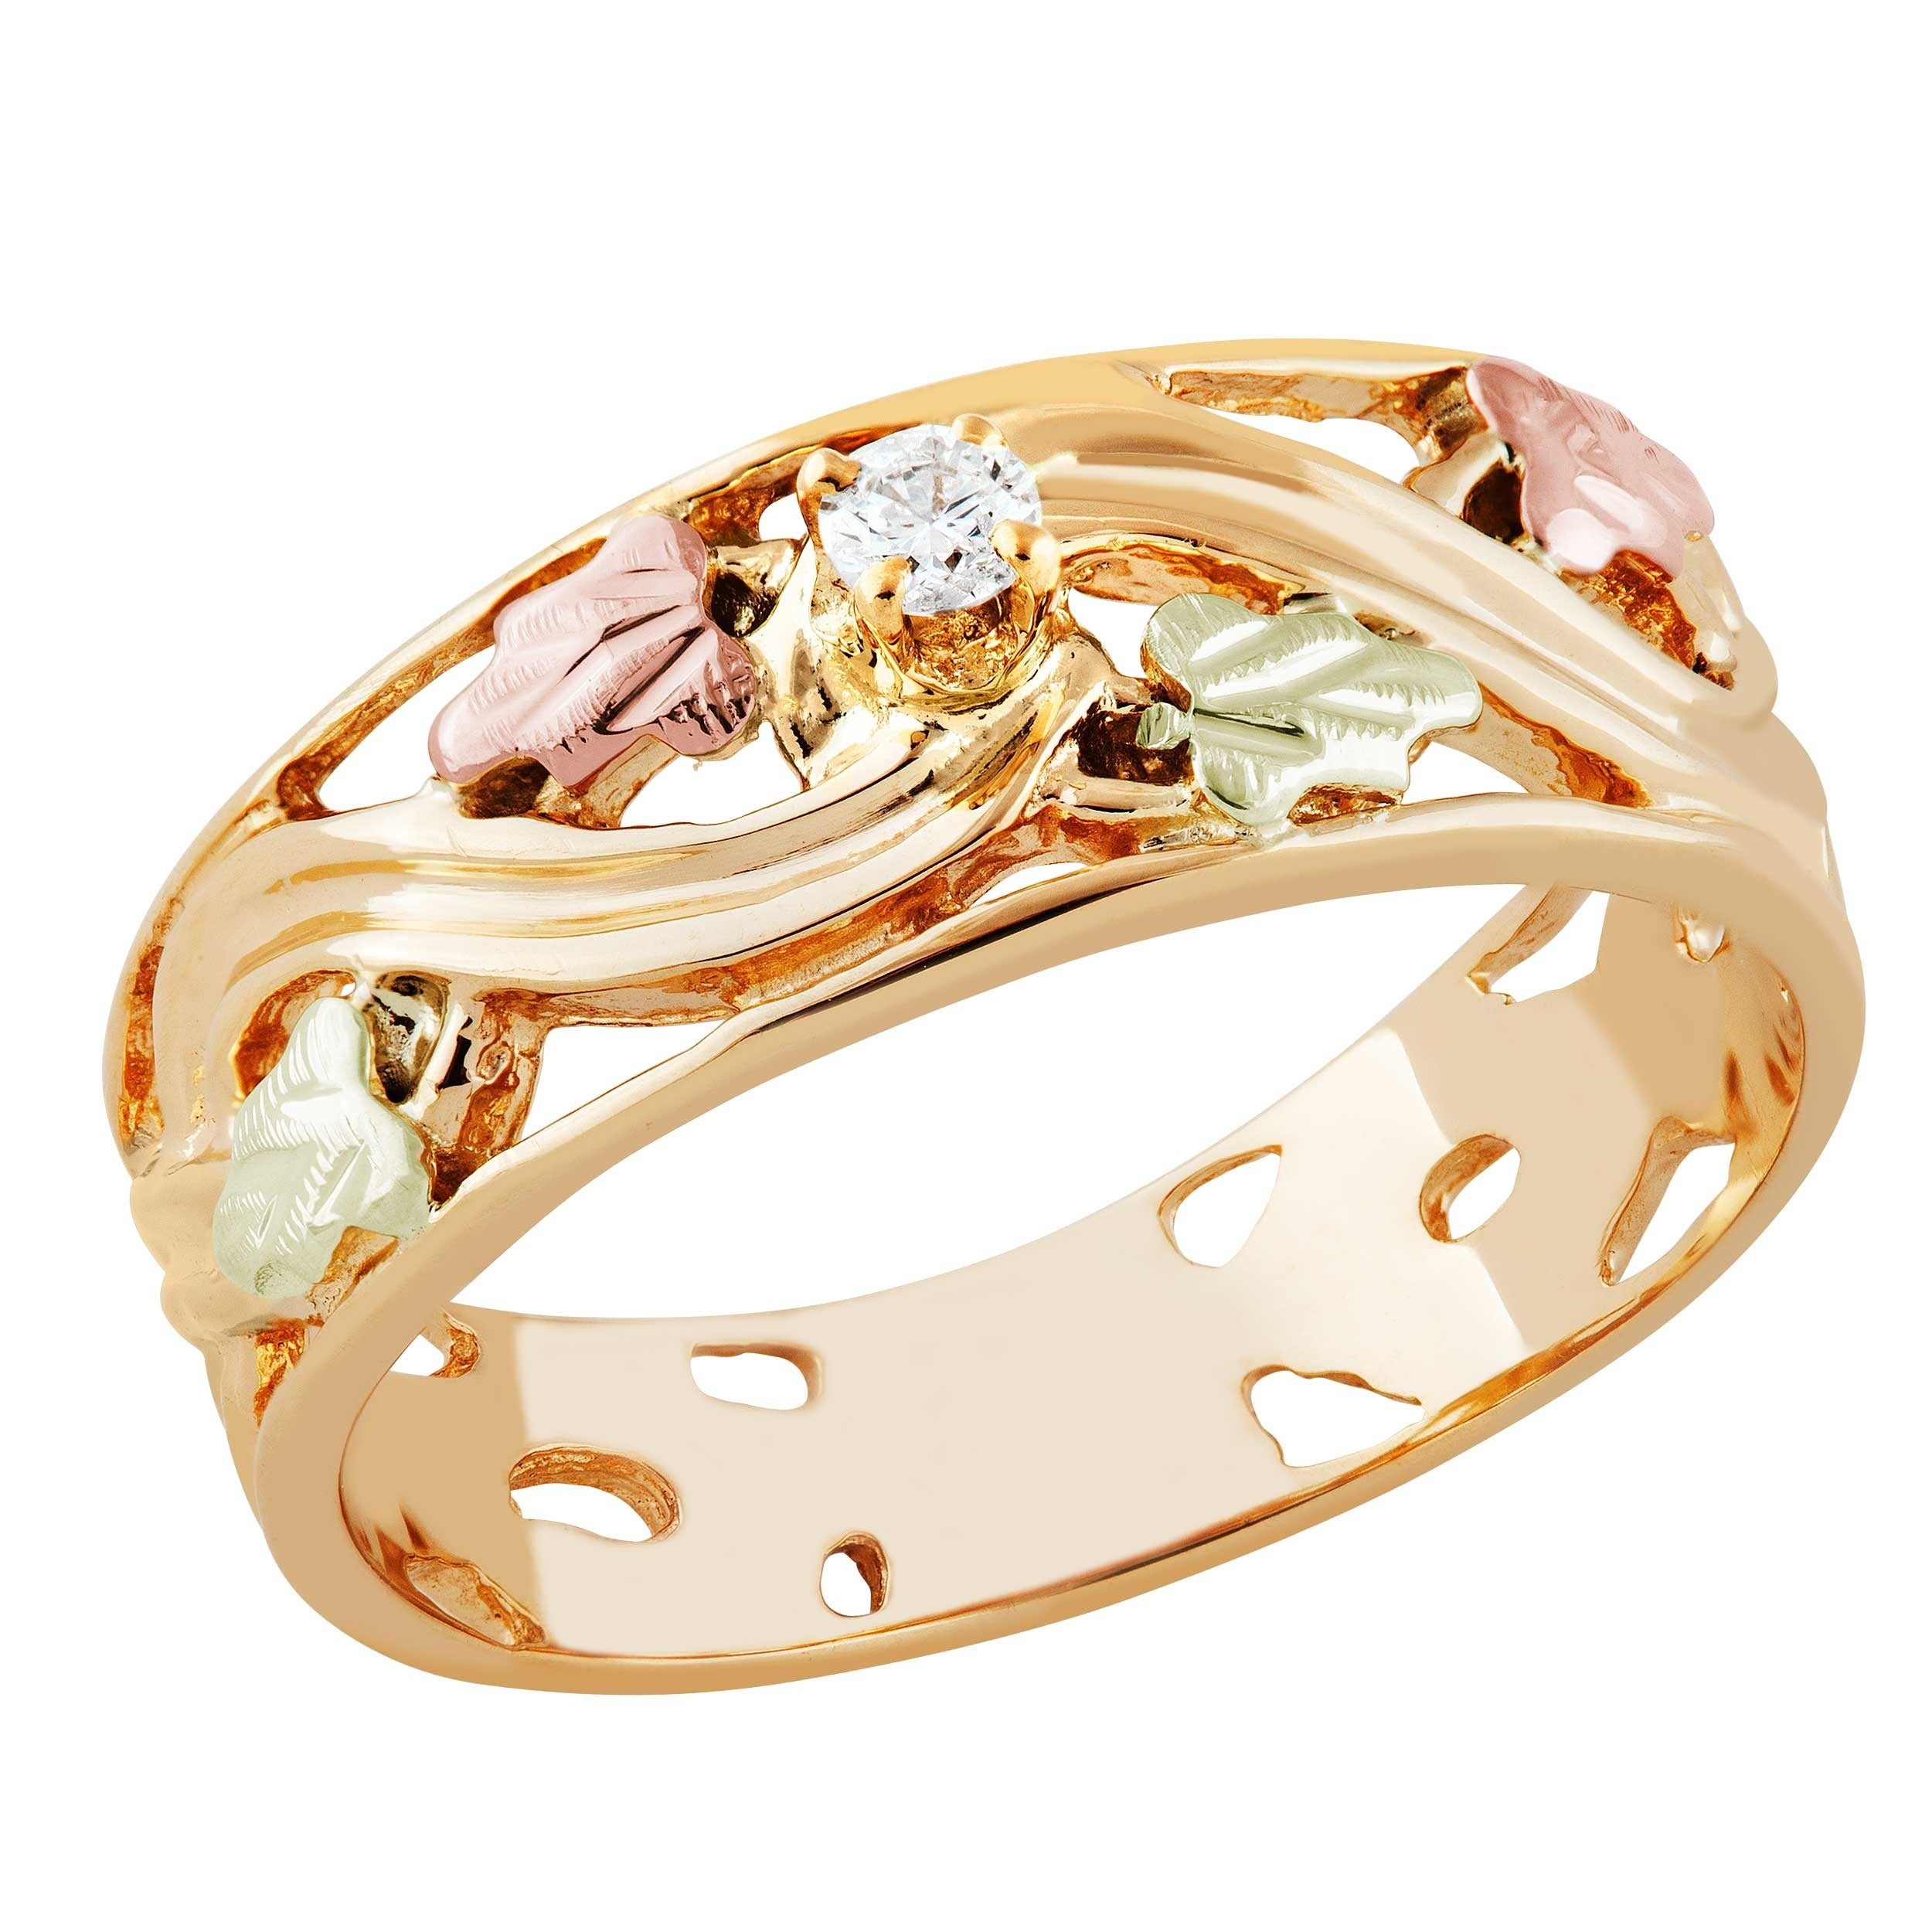 nr product ring adr topaz nature shiny peach gold diamond home